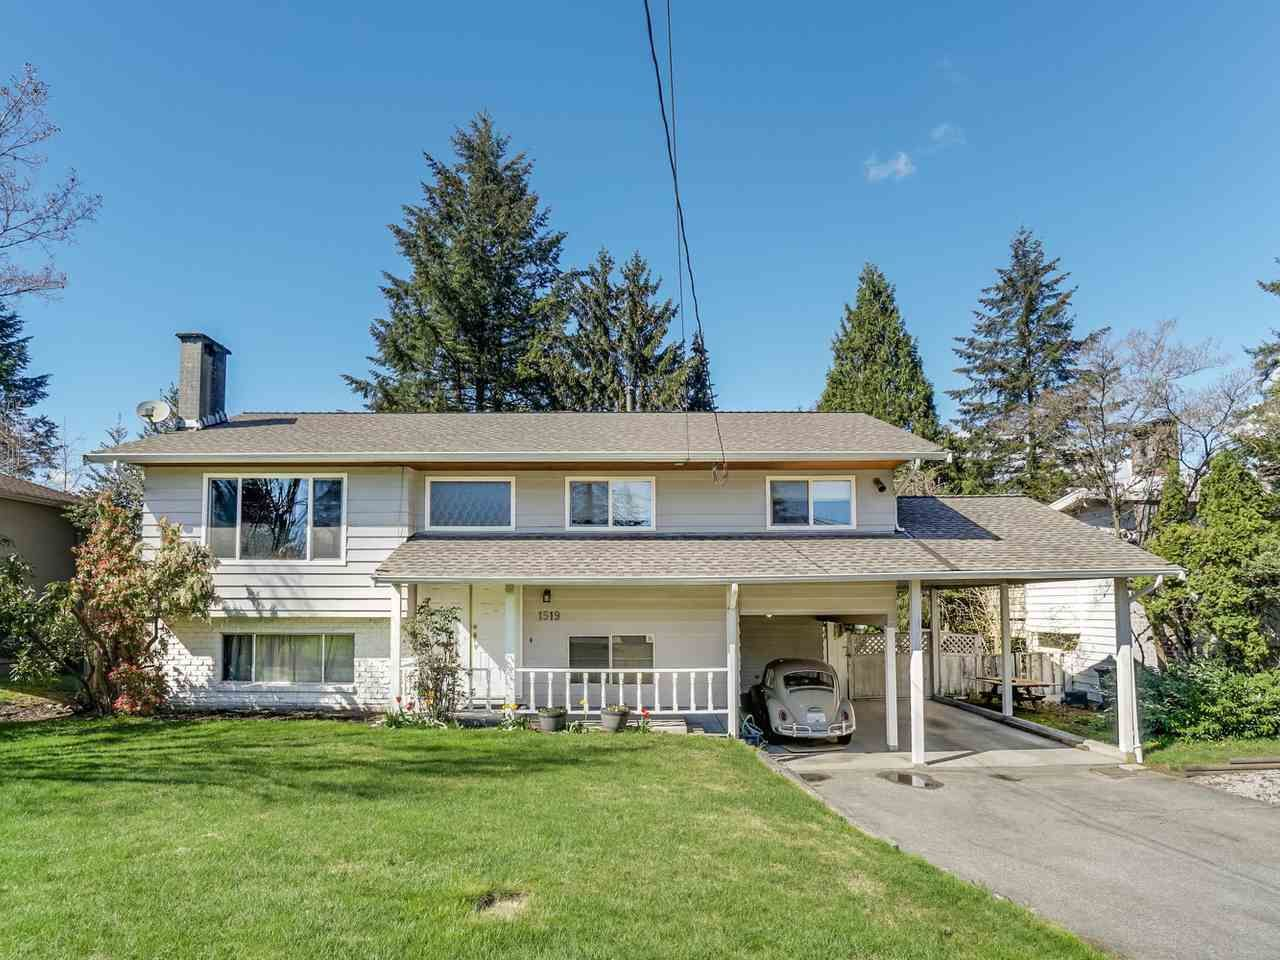 Main Photo: 1519 MILFORD Avenue in Coquitlam: Central Coquitlam House for sale : MLS®# R2159290